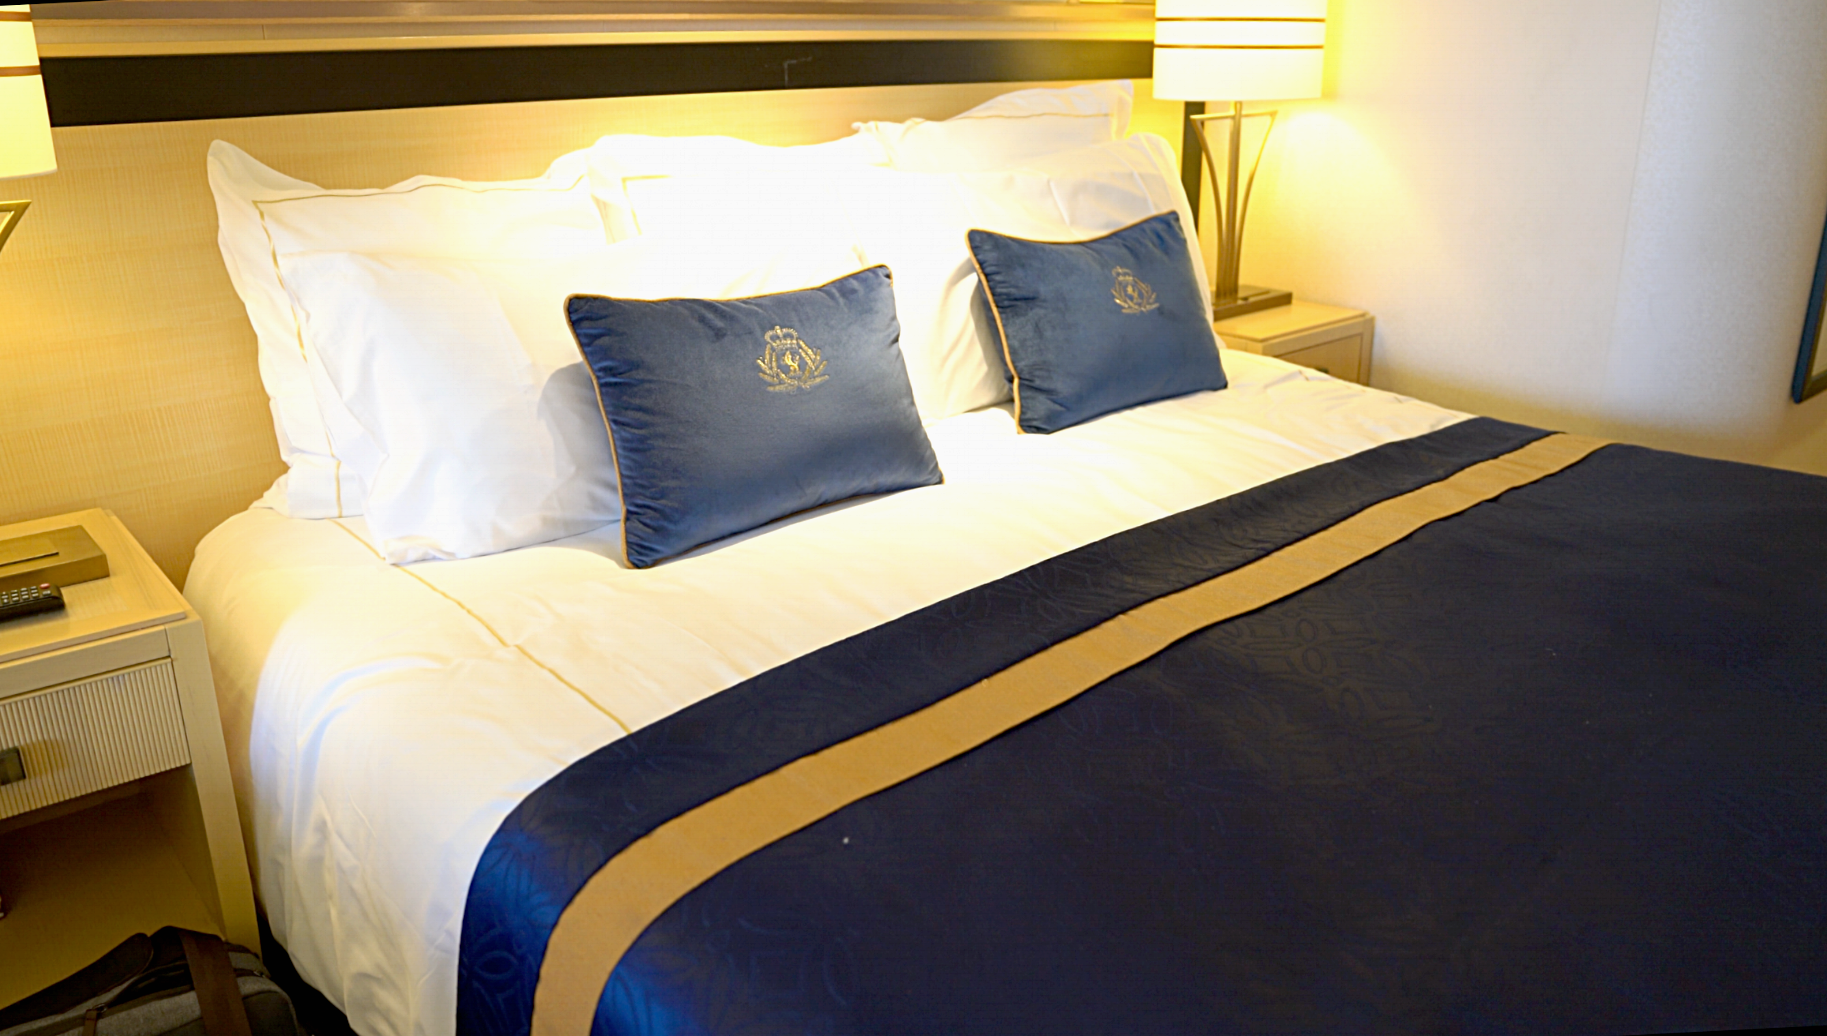 The bed really is as luxurious and comfortable as it looks here.